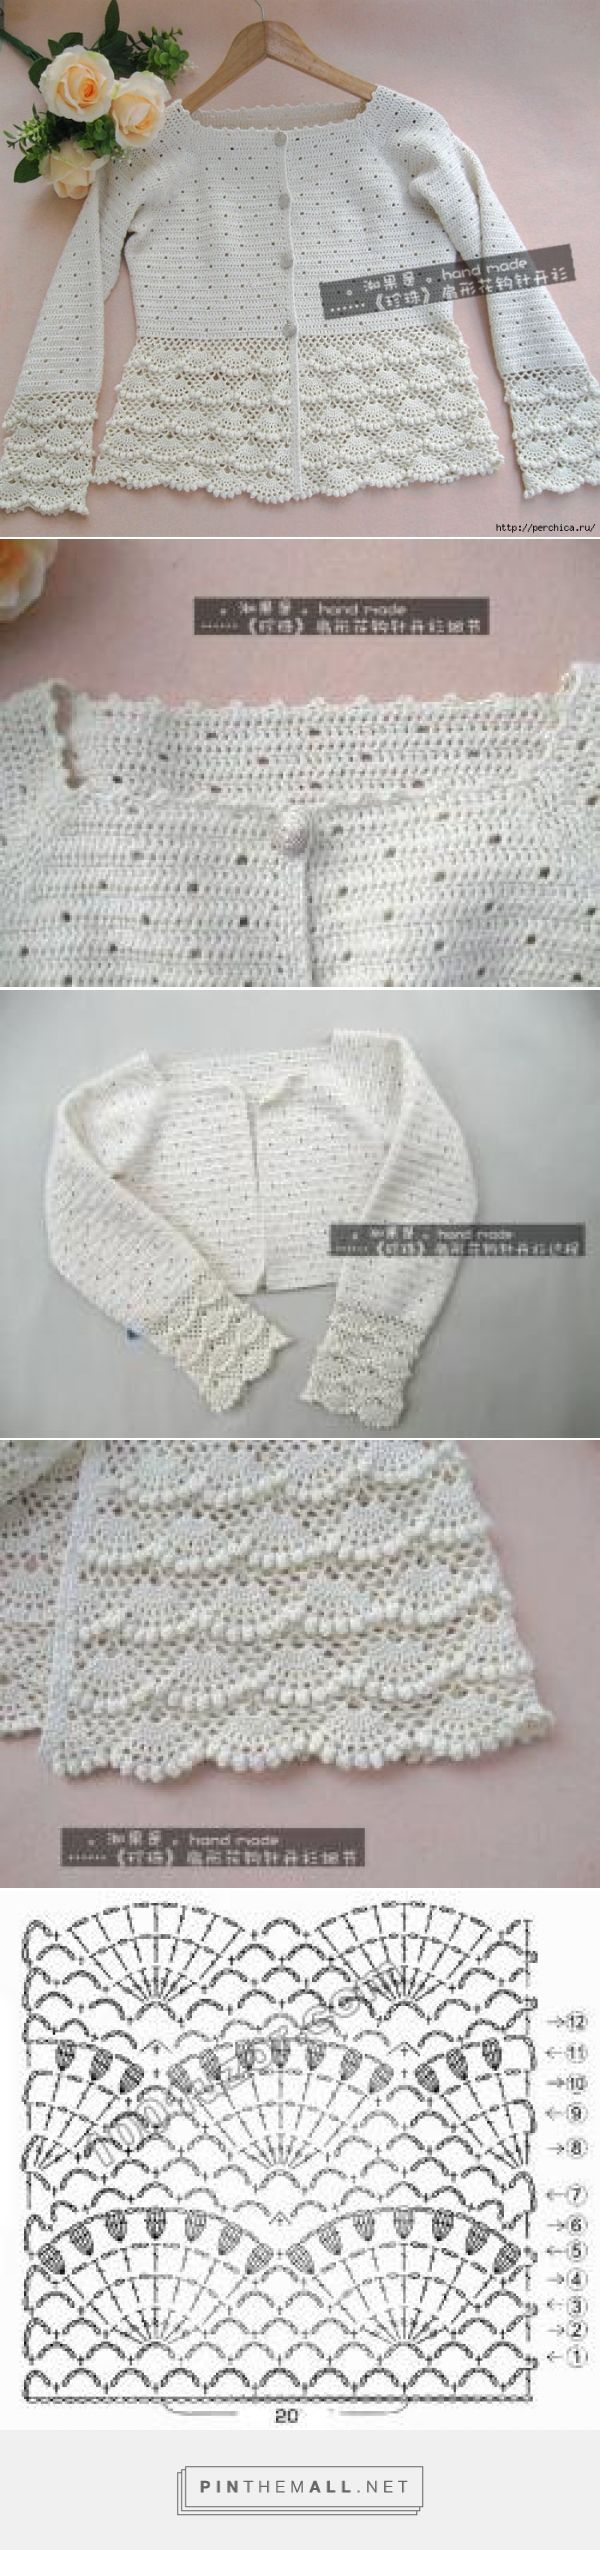 Crochet Lace Jacket ~~ http://perchica.ru/post322865017/ ~~ LiveInternet -